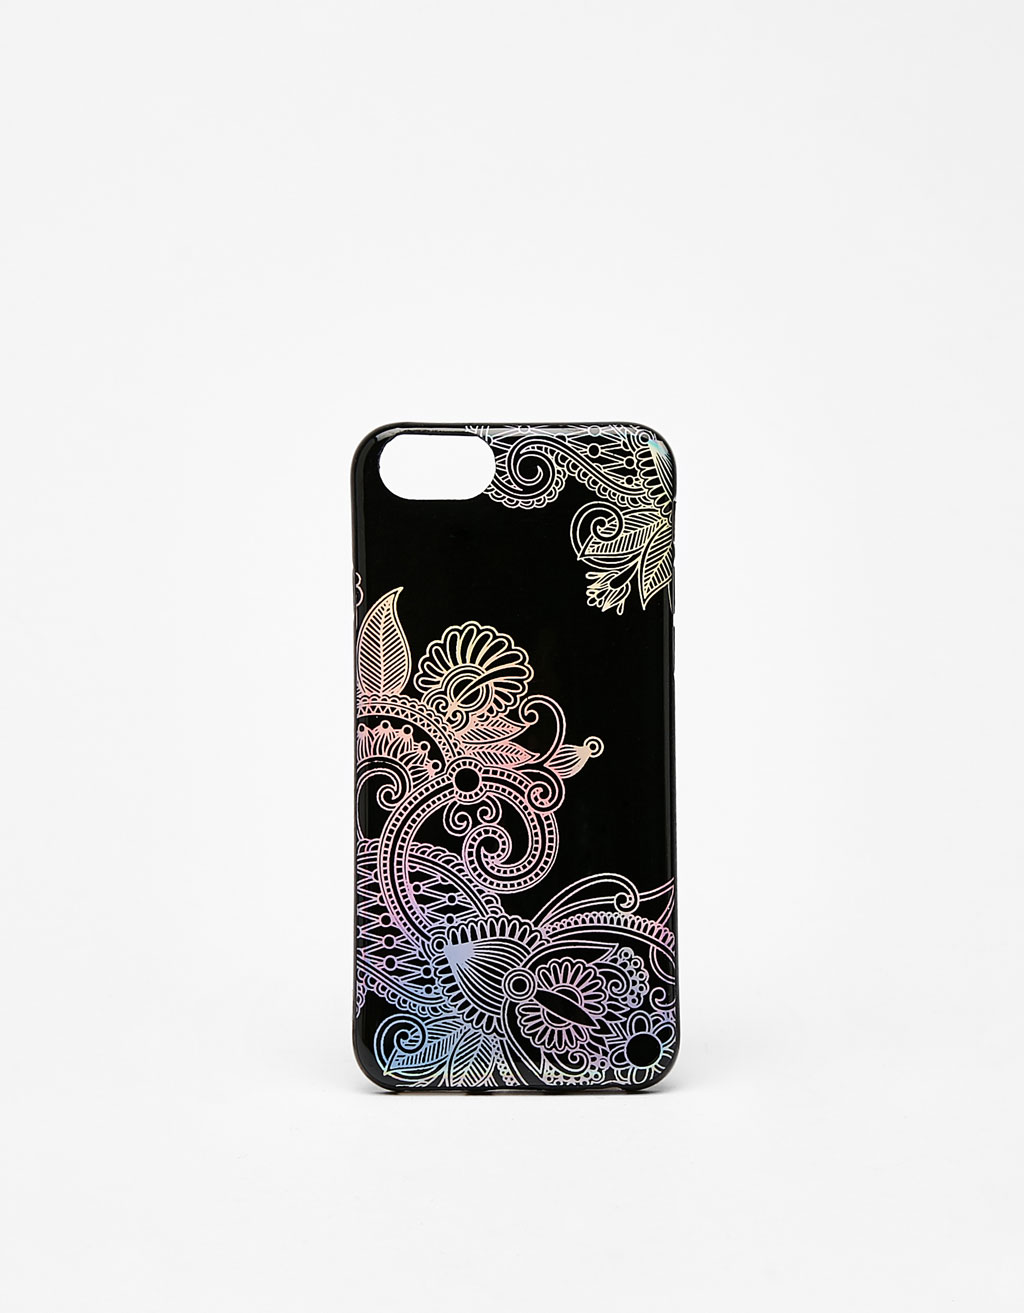 Coque à relief holographique iPhone 6/6s/7